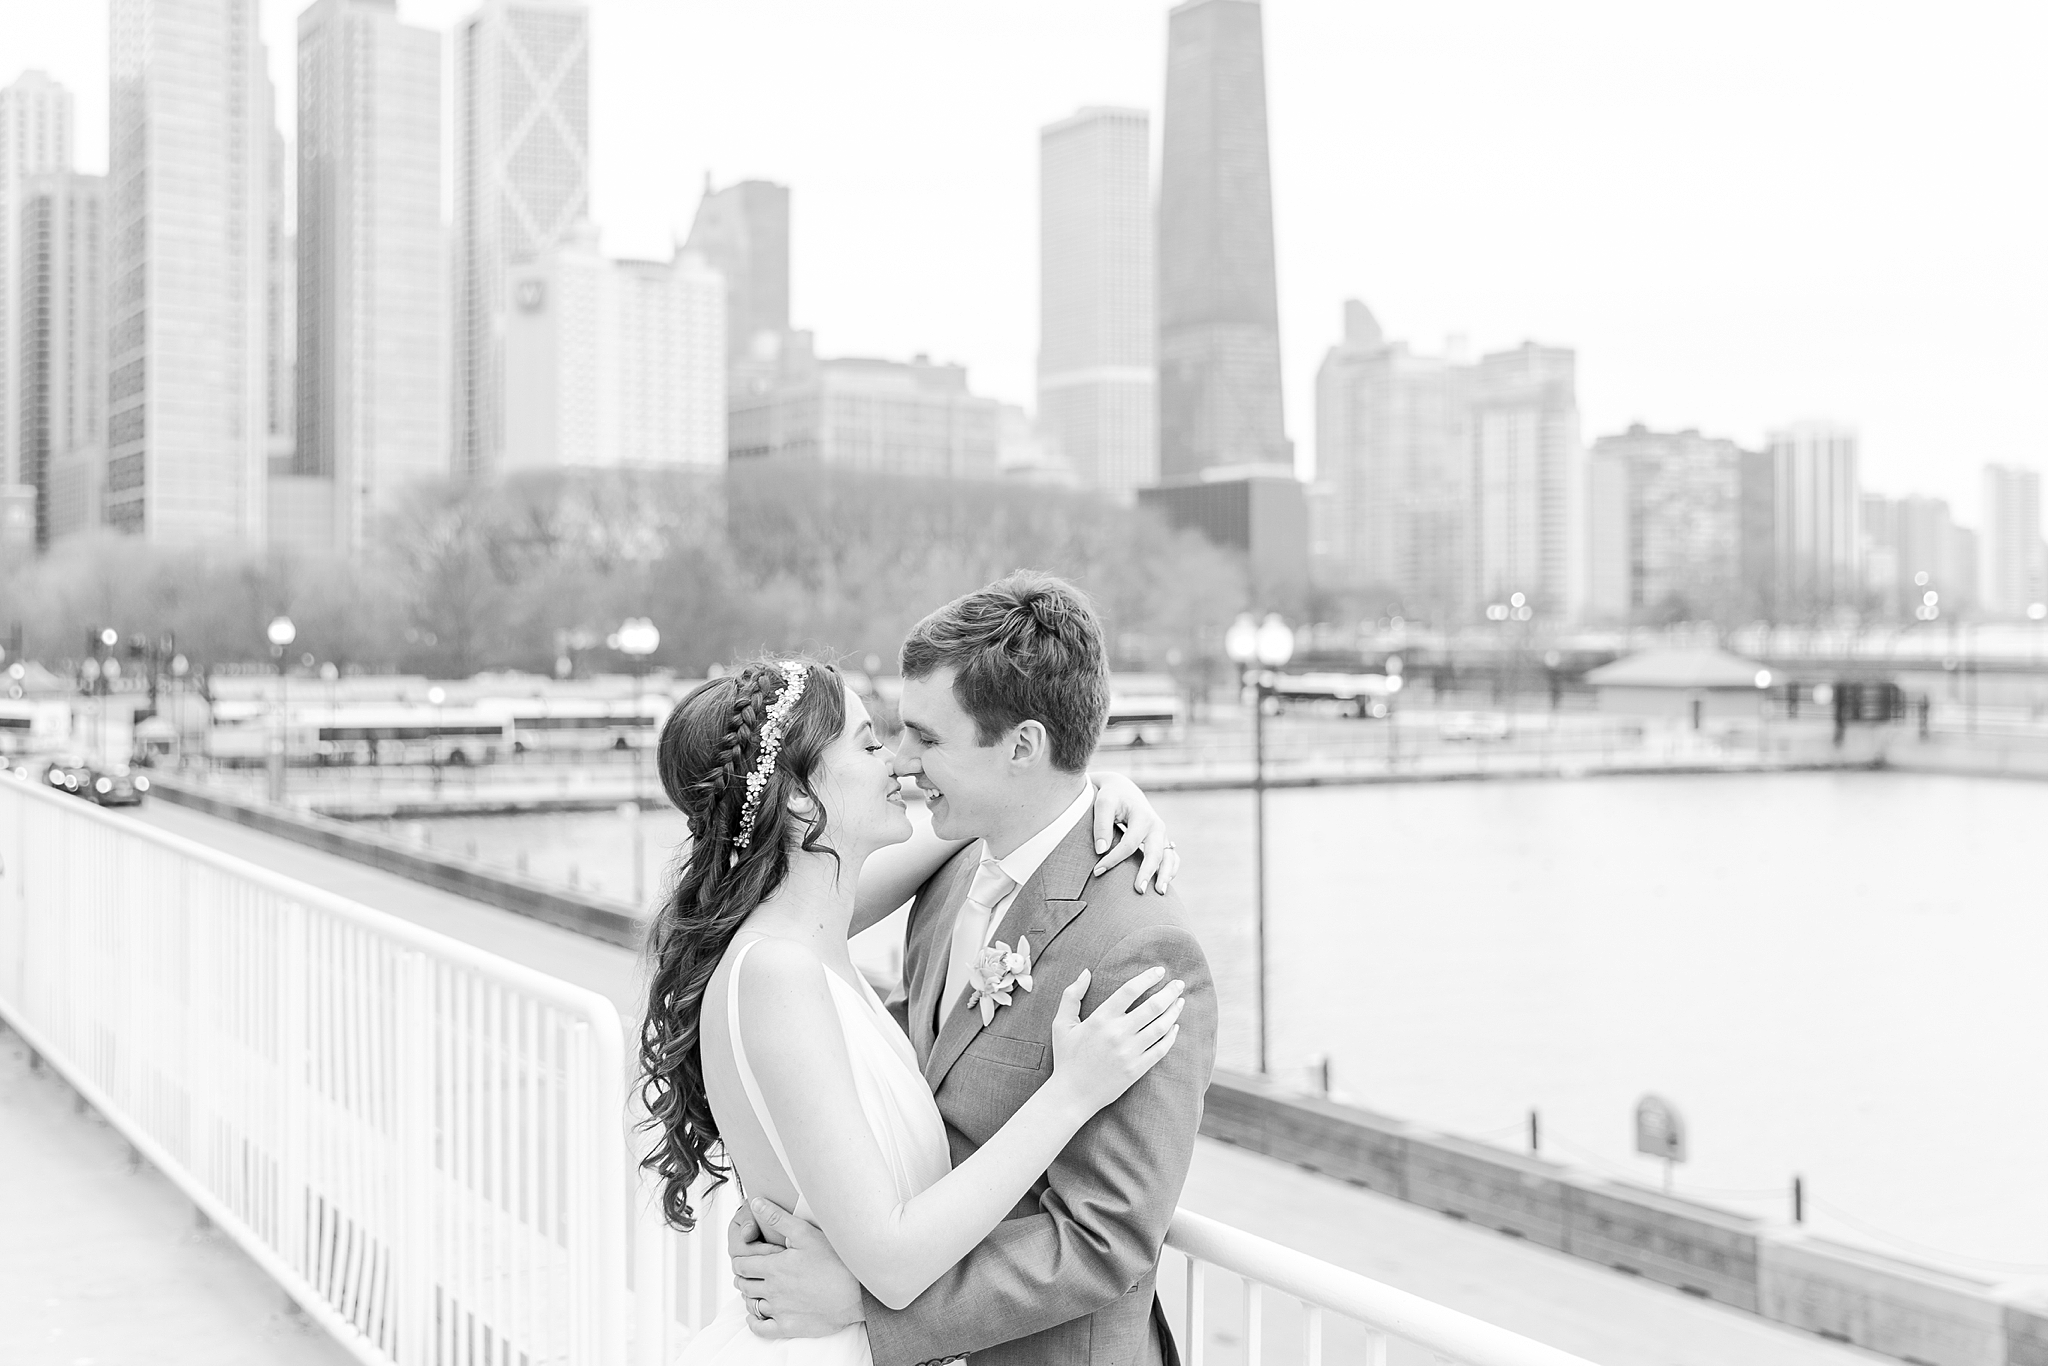 colorful-tropical-wedding-photos-at-the-crystal-gardens-in-chicago-illinois-by-courtney-carolyn-photography_0048.jpg